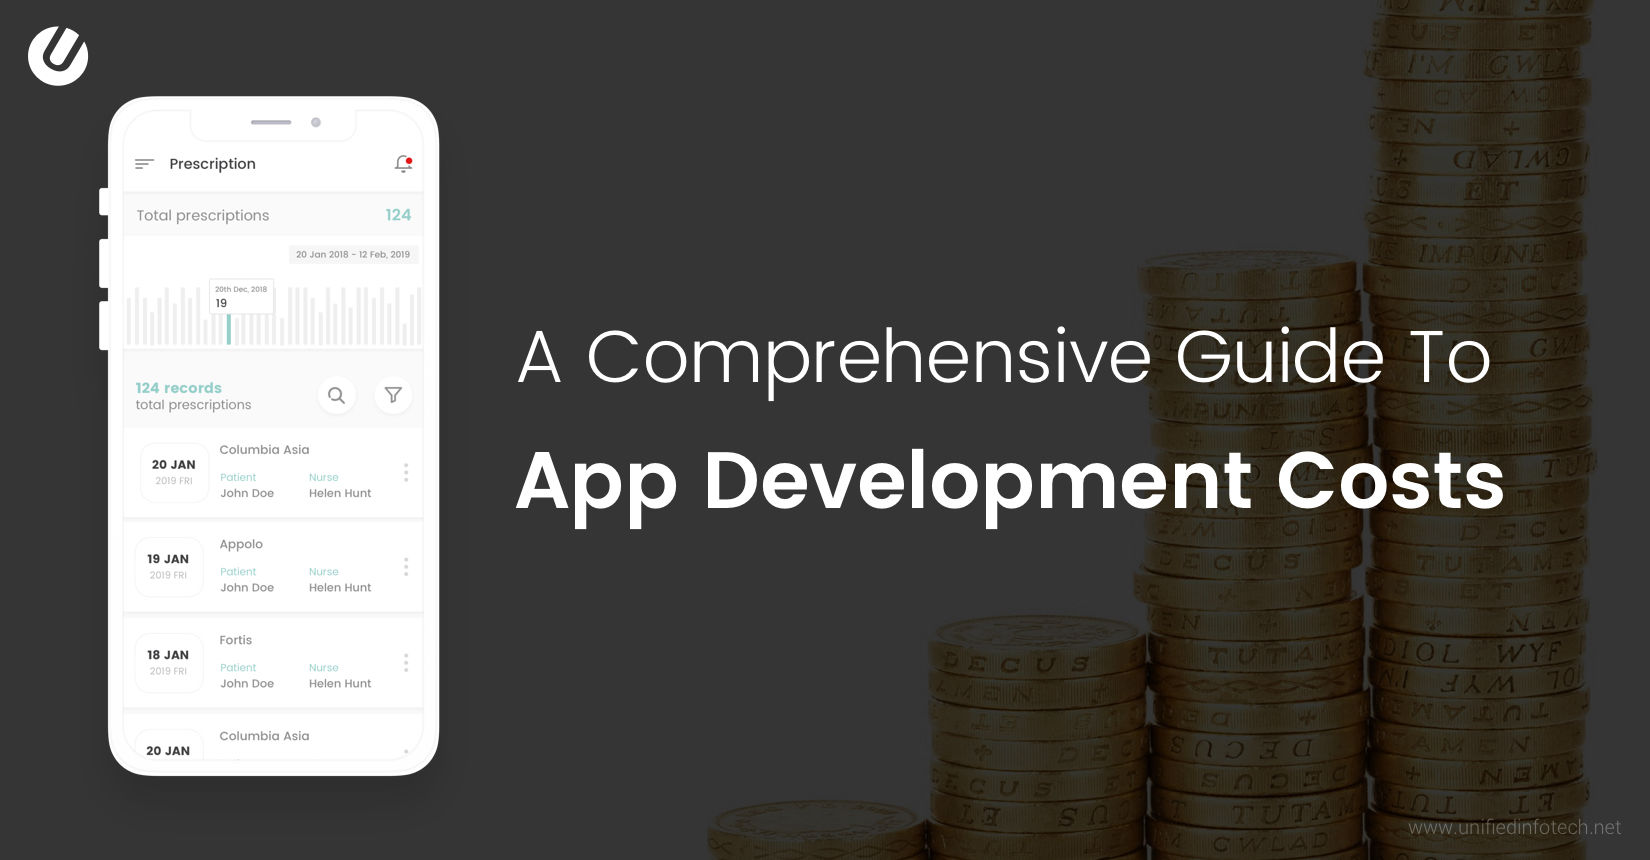 How Much Does It Cost to Make an App - Massive Consideration for 2019